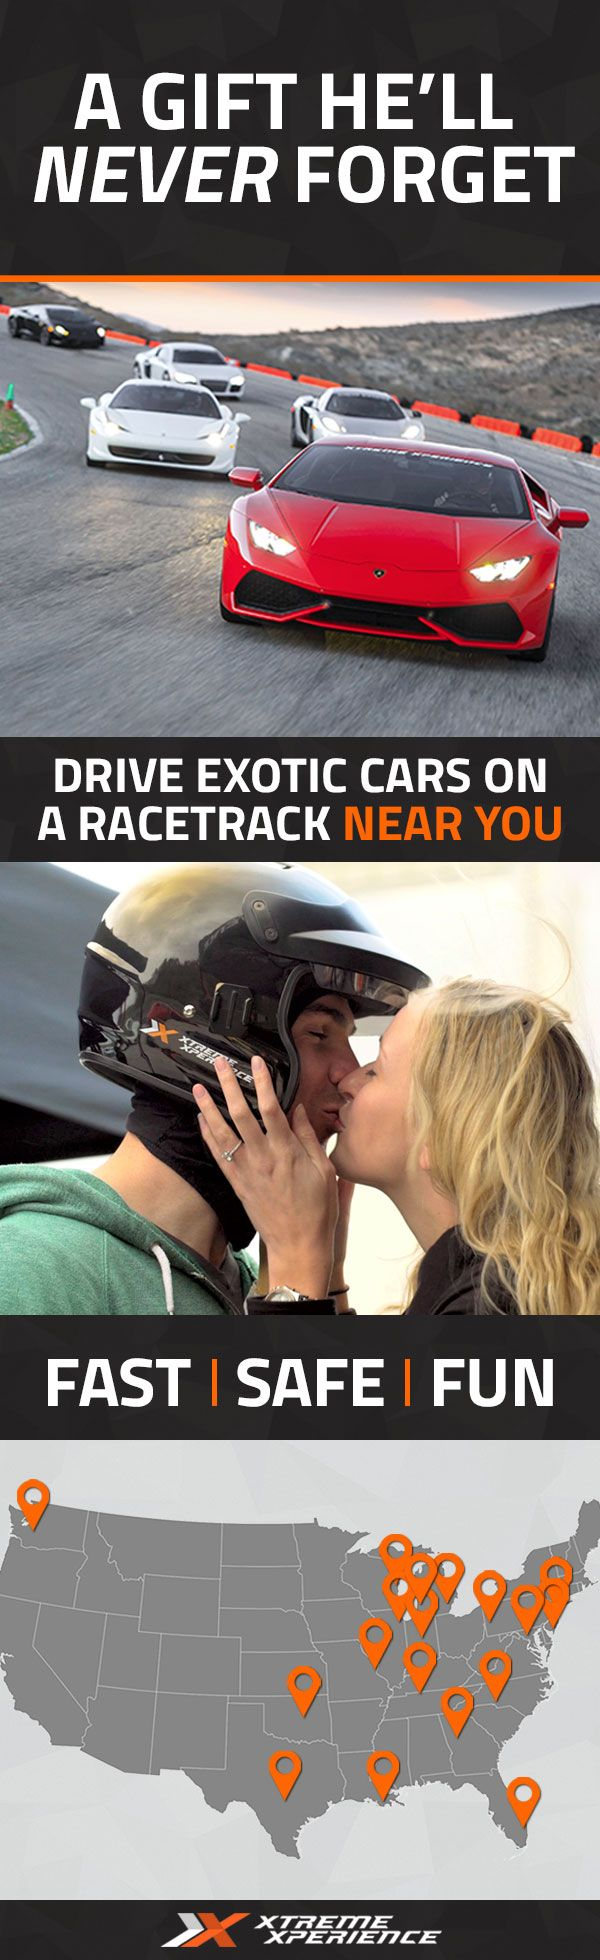 It's never been easier to give a gift to the guy who has everything. Driving a Ferrari, Lamborghini, Porsche or other exotic sports car on a racetrack is a unique gift idea that is guaranteed to leave a smile on his face, a good story to tell, and a life-long memory. Xtreme Xperience brings the thrill of a lifetime to a racetrack near you. Reserve your SupercarTrack Xperience today. Space is limited!